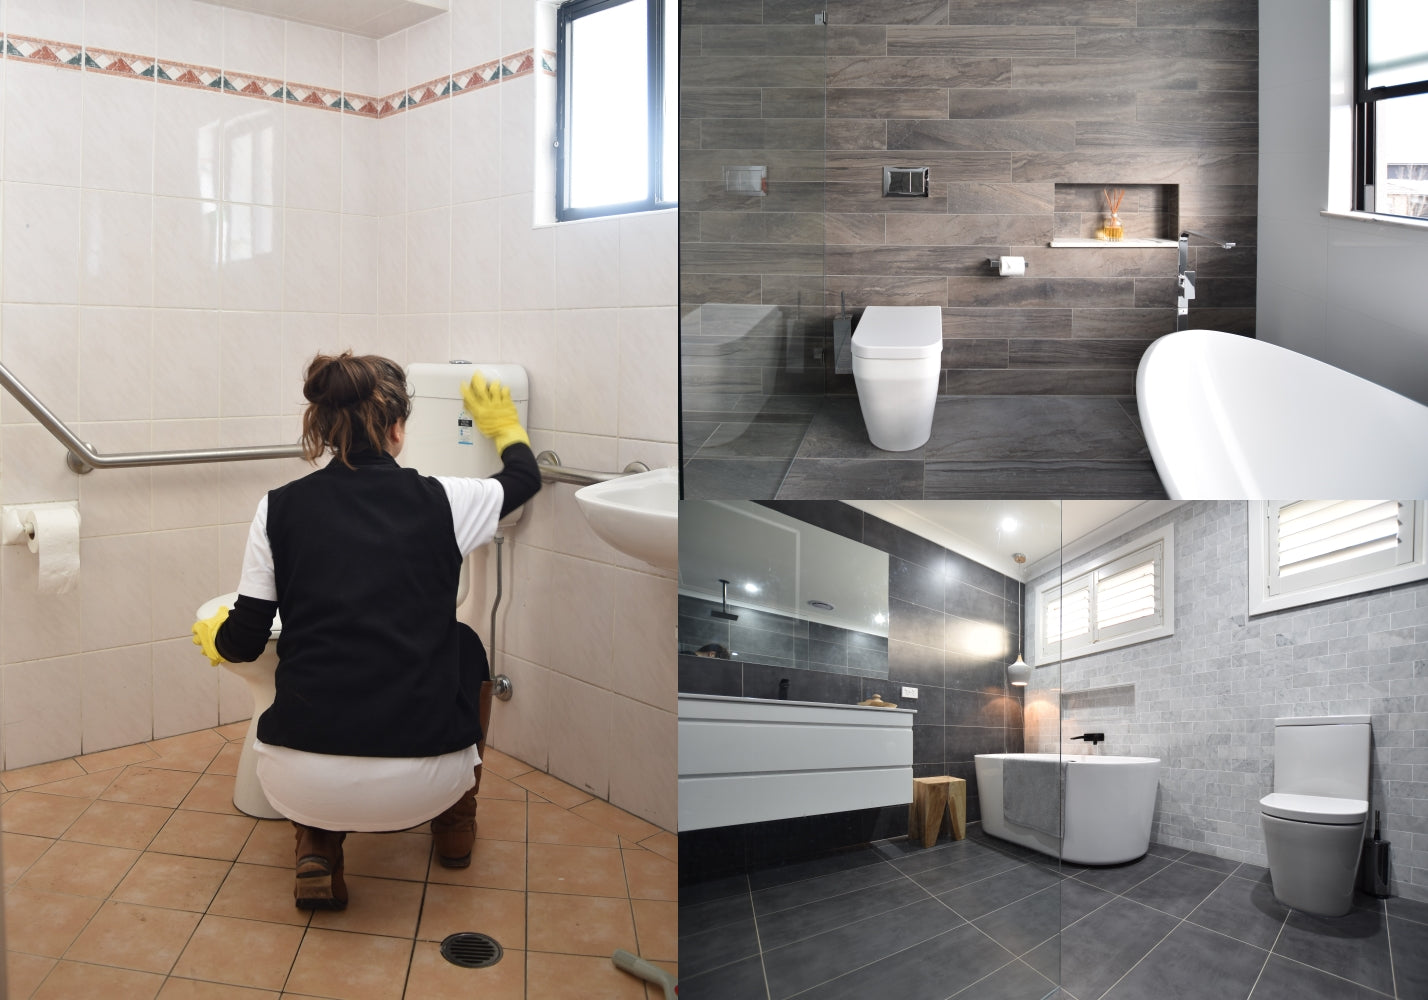 Bathroom designs that are easy to clean and low maintenance, especially for shower, vanity and toilet